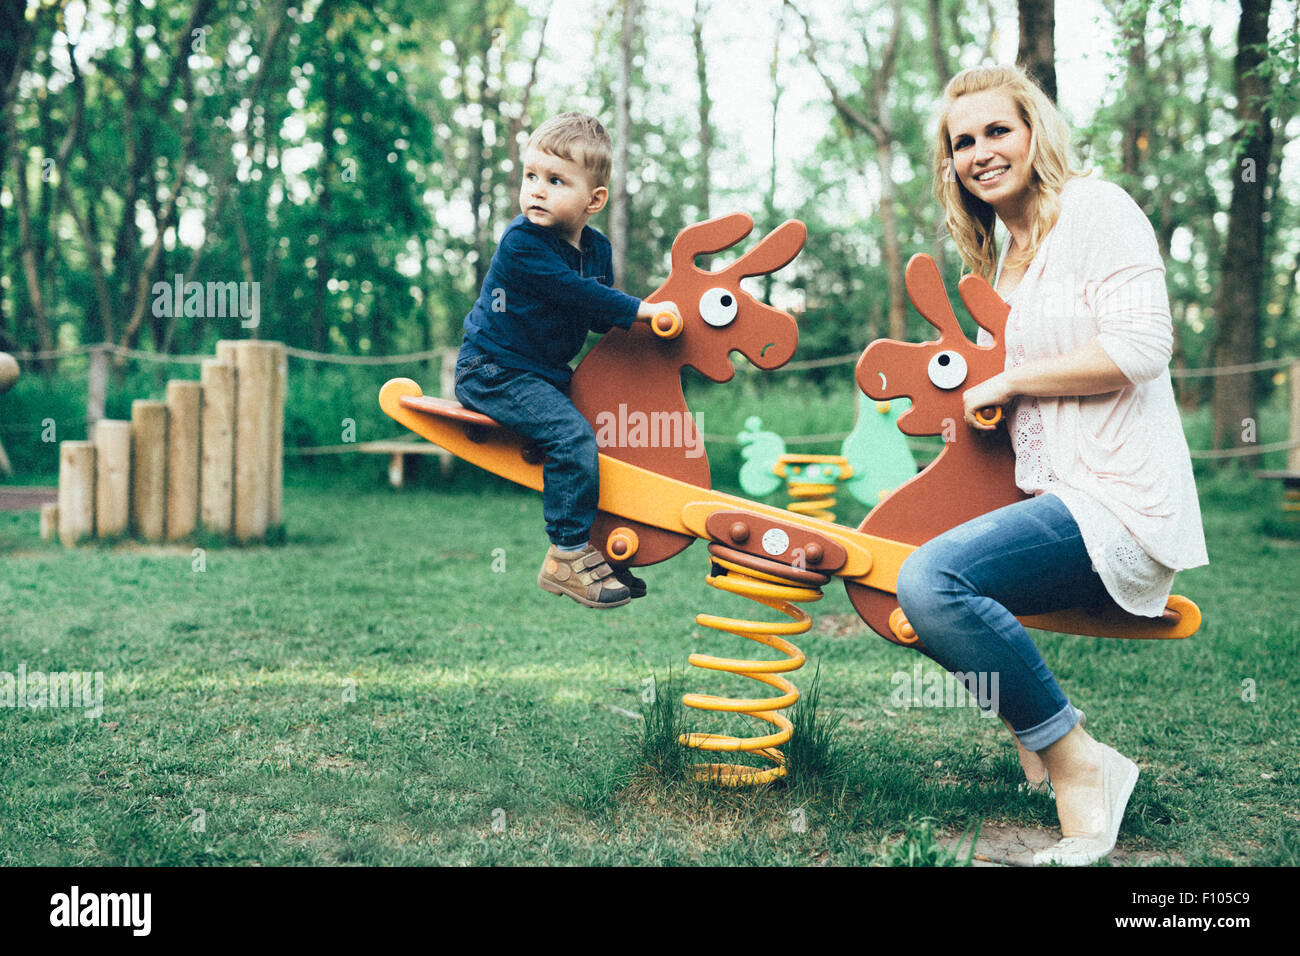 Mother and son playing in the playground and riding a seesaw - Stock Image